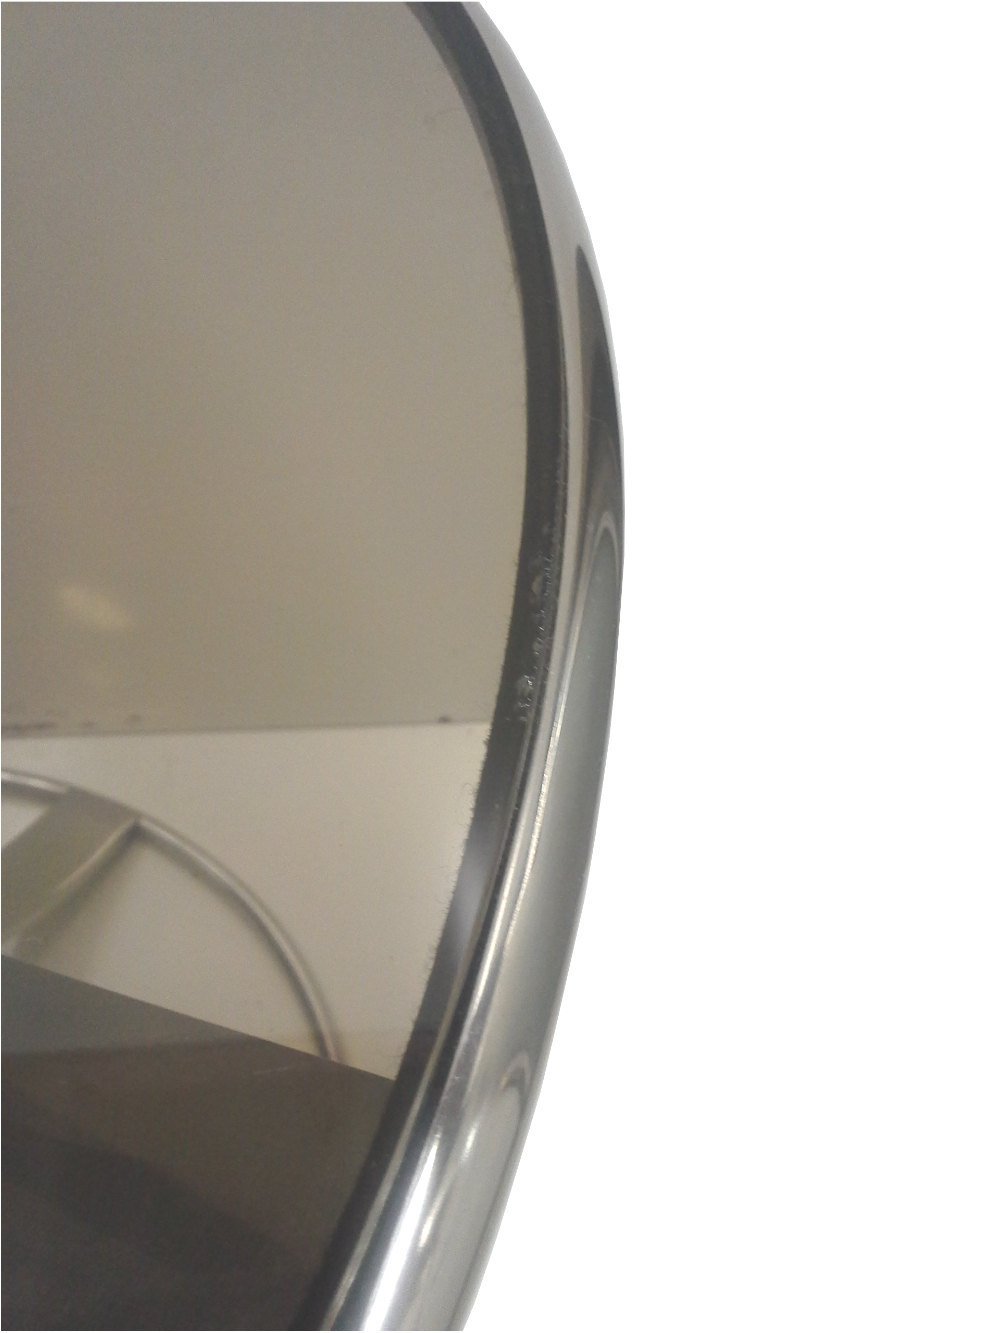 Mid-Century Steelcase End Table in Chromed Steel